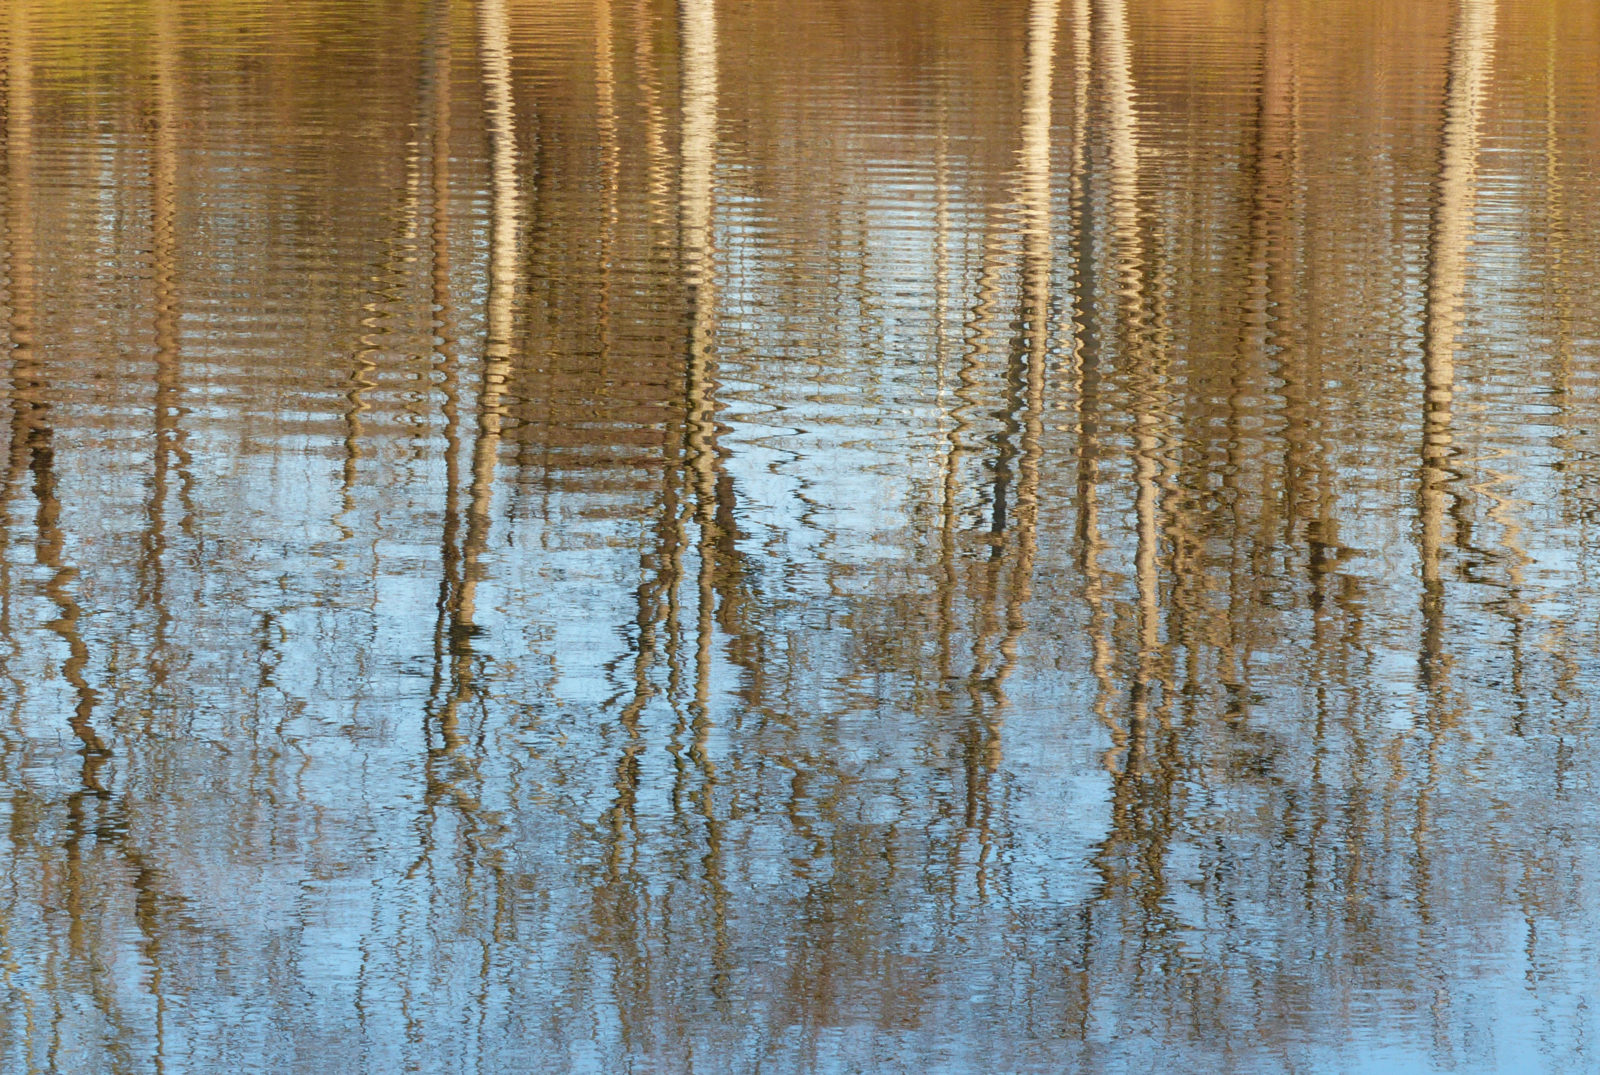 Reflections and lines